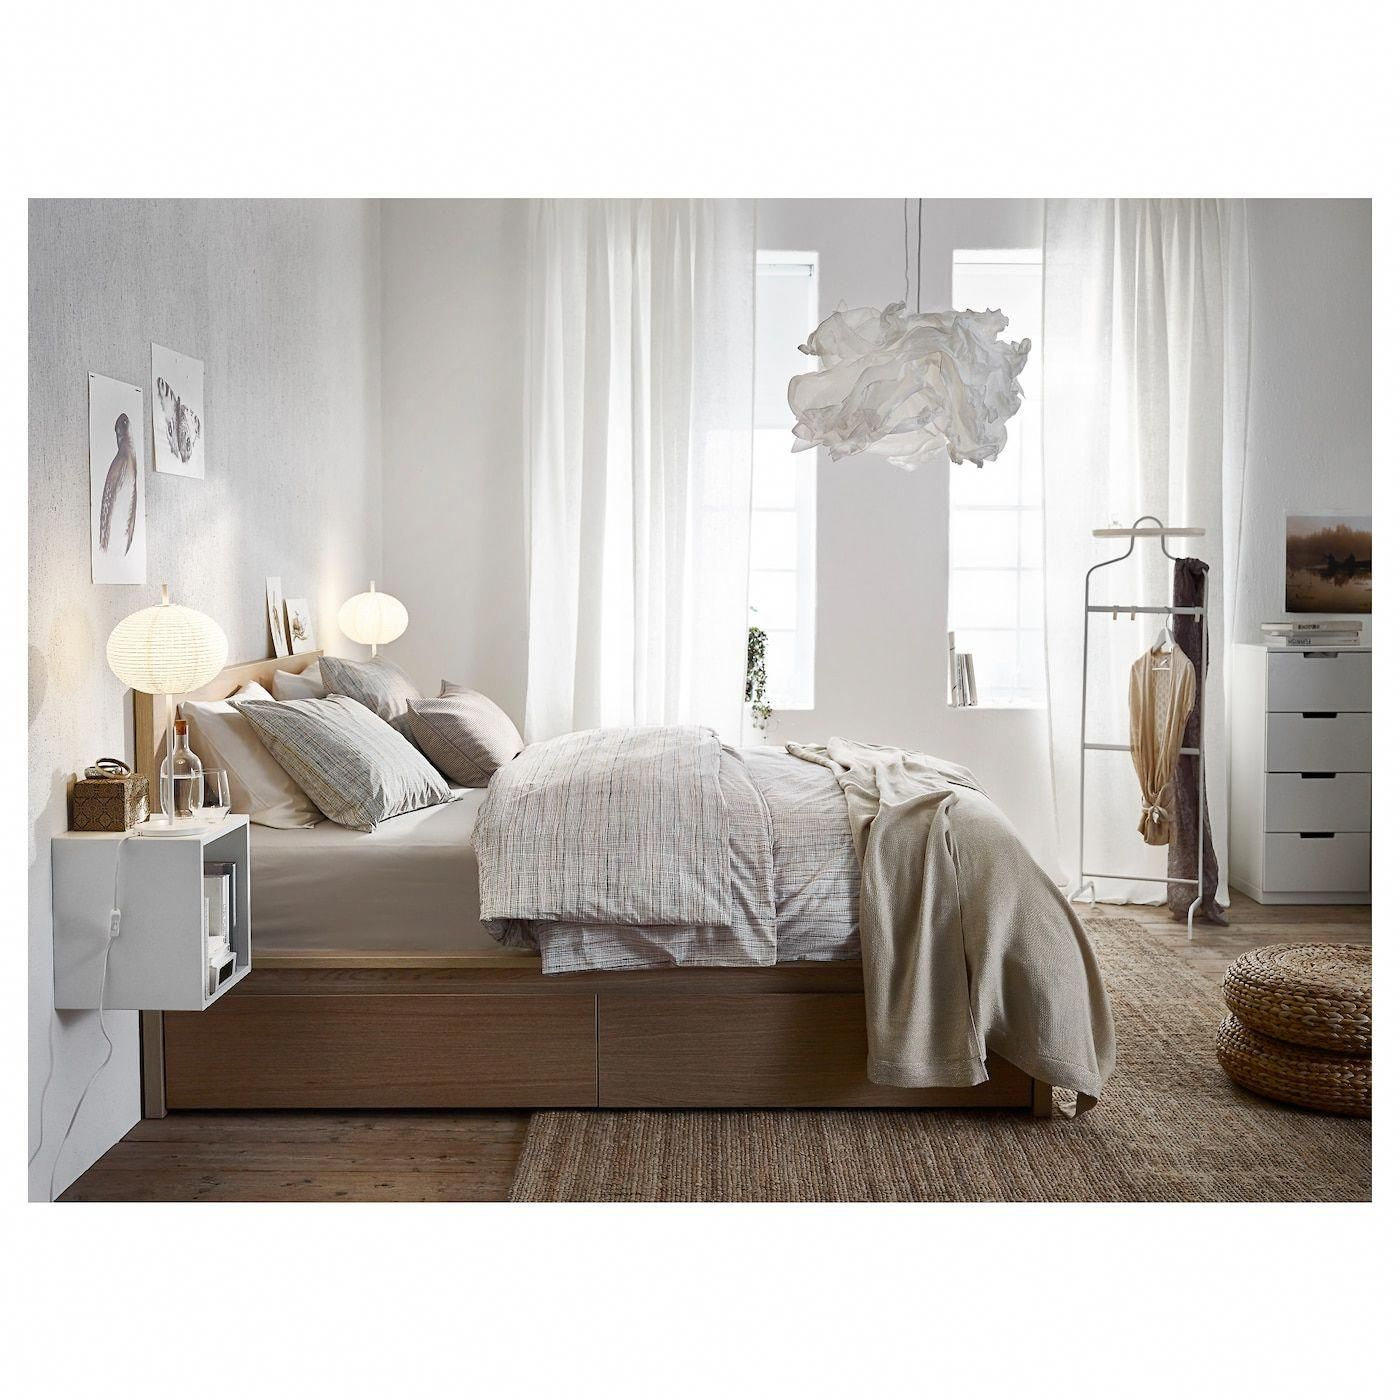 Ikea Malm High Bed Frame 2 Storage Boxes White Stained Oak Veneer Whitebedroom Malm Bed Malm Bed Frame Furniture